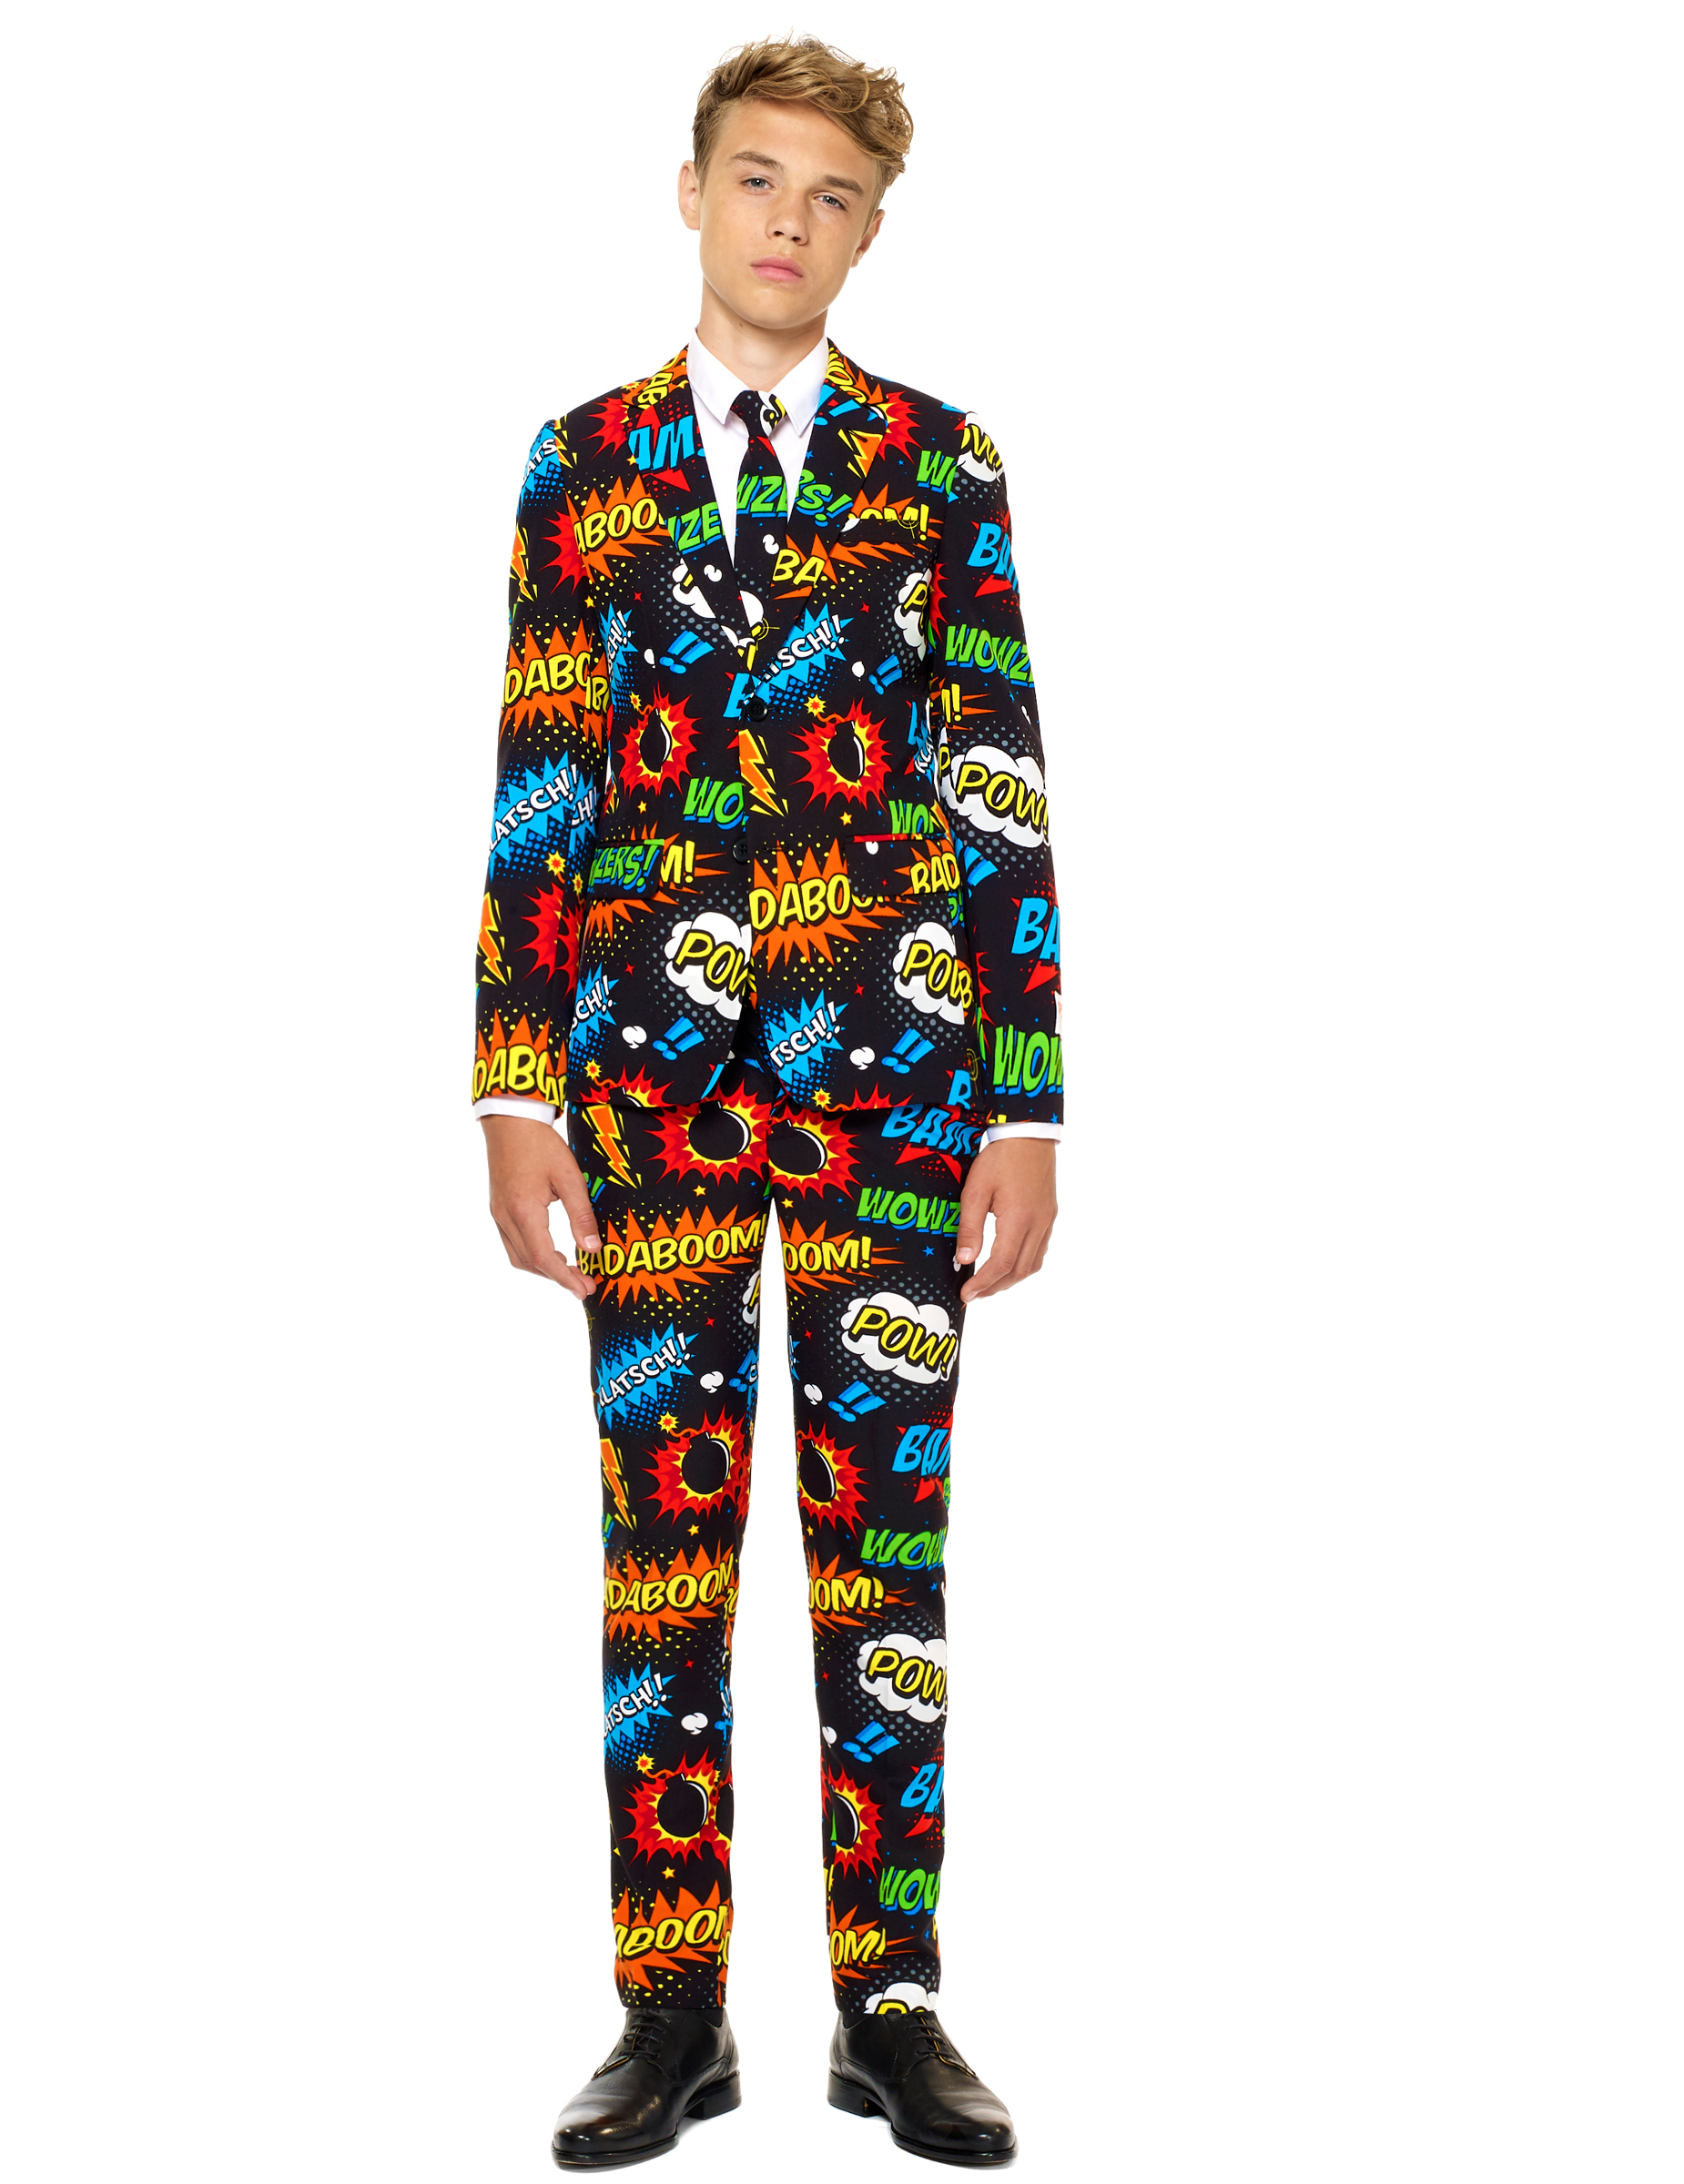 Mr Comic Opposuits Anzug Fur Kinder Schwarz Bunt Gunstige